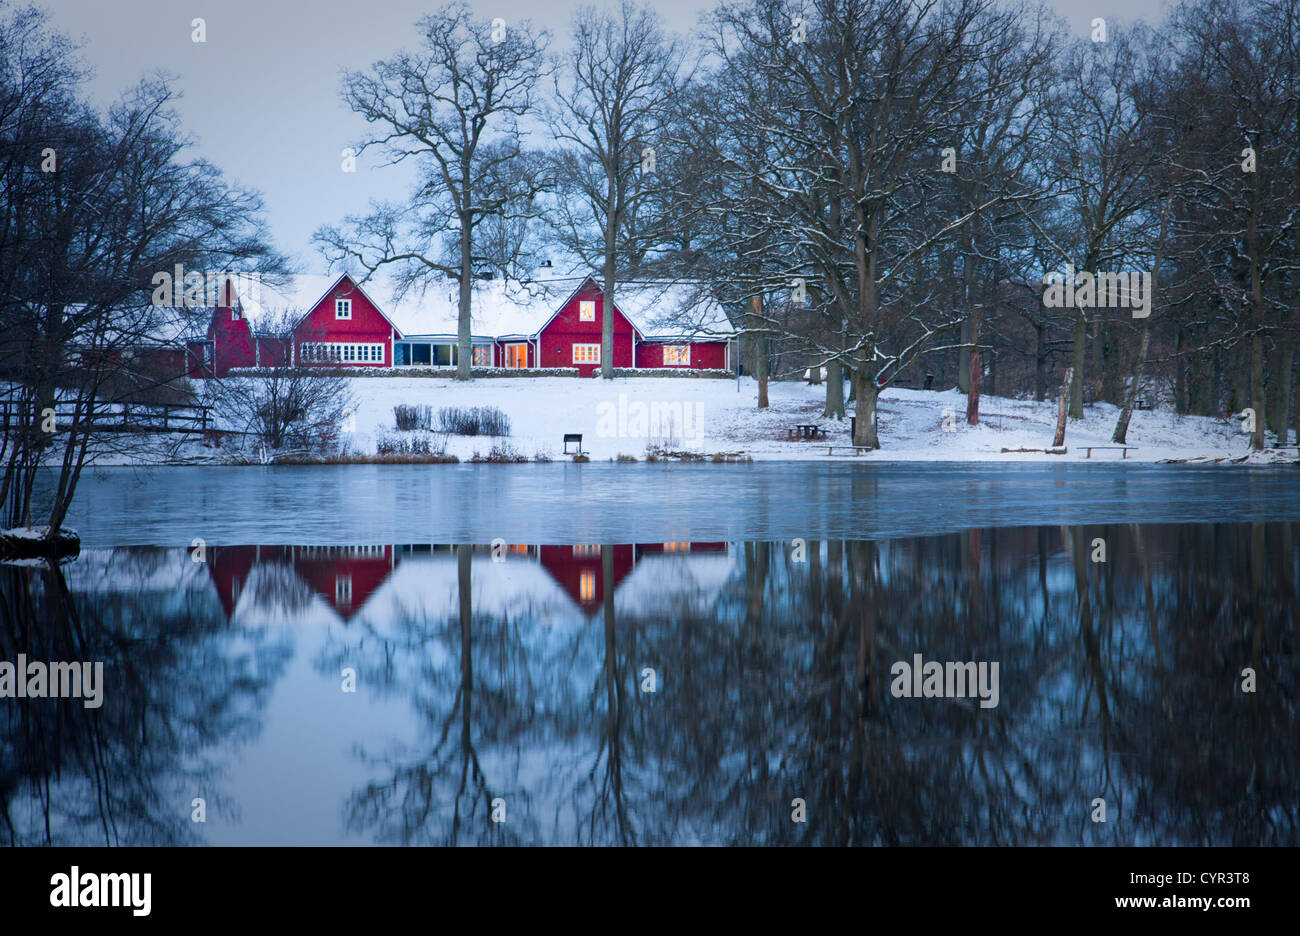 Red home a dawn near a lake with its reflection. - Stock Image